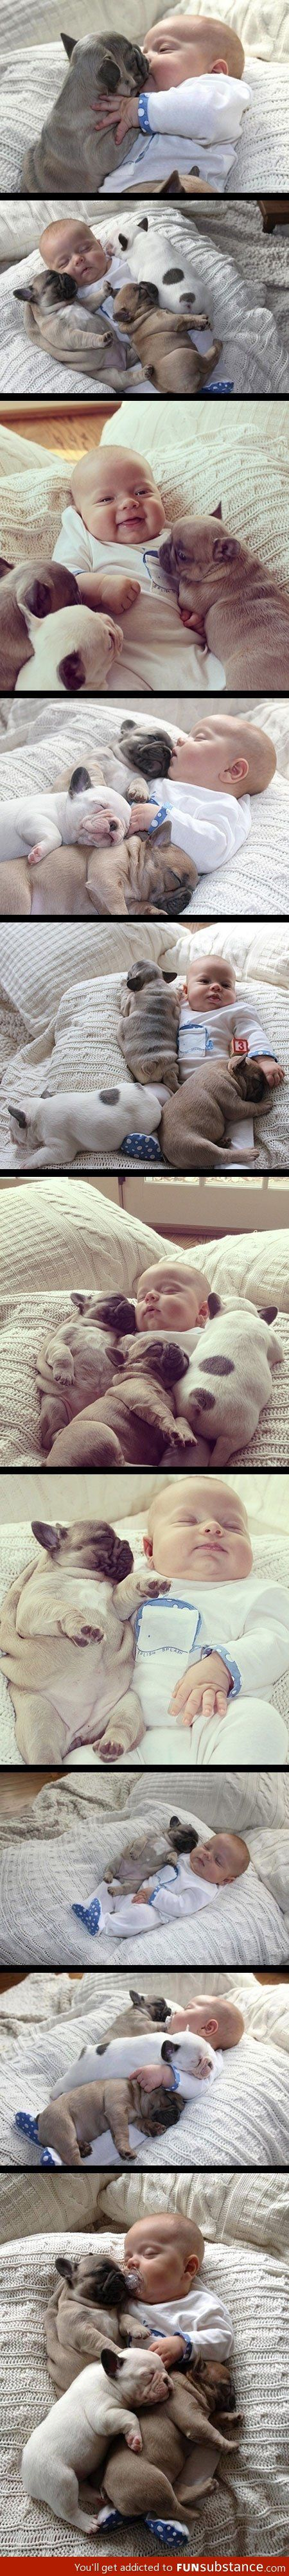 Best Likable Things Images On Pinterest Closet Doors Curtain - Seeing tiny puppies trying to walk for the first time will melt your heart